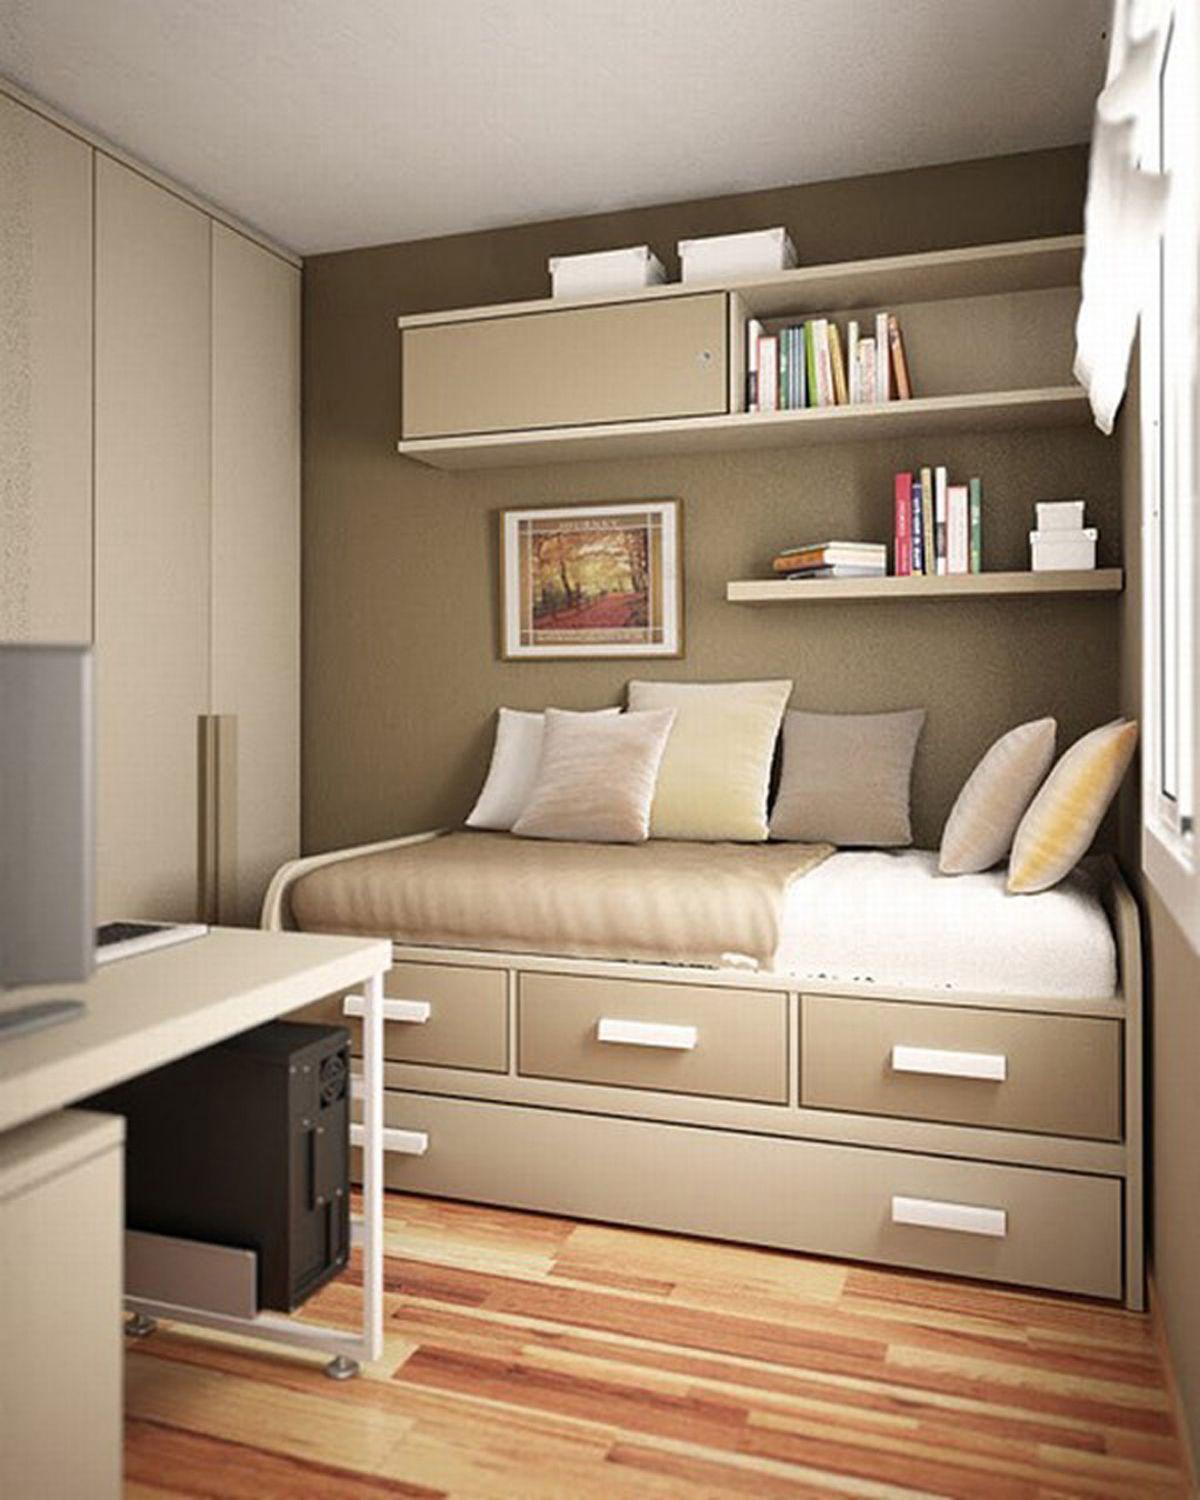 Home design and interior gallery of bedrooms modern beige teenage bedroom with practical storage units ideas for small rooms also rh co pinterest